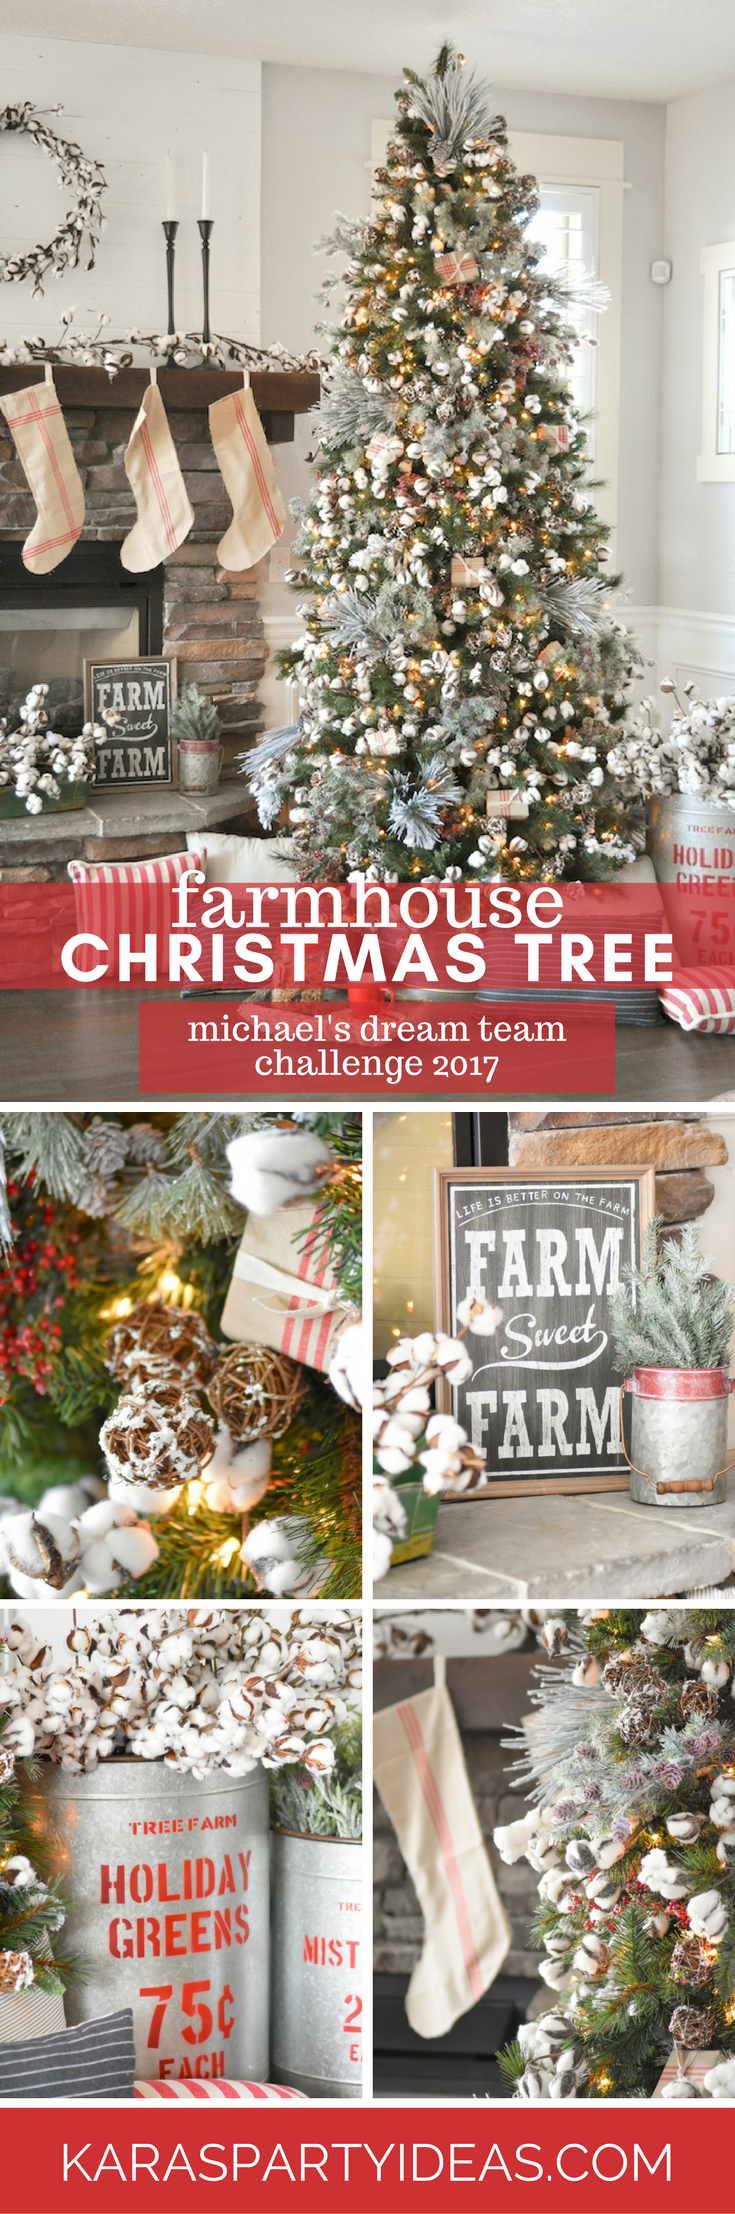 Farmhouse Christmas Tree by Kara's Party Ideas - KarasPartyIdeas.com